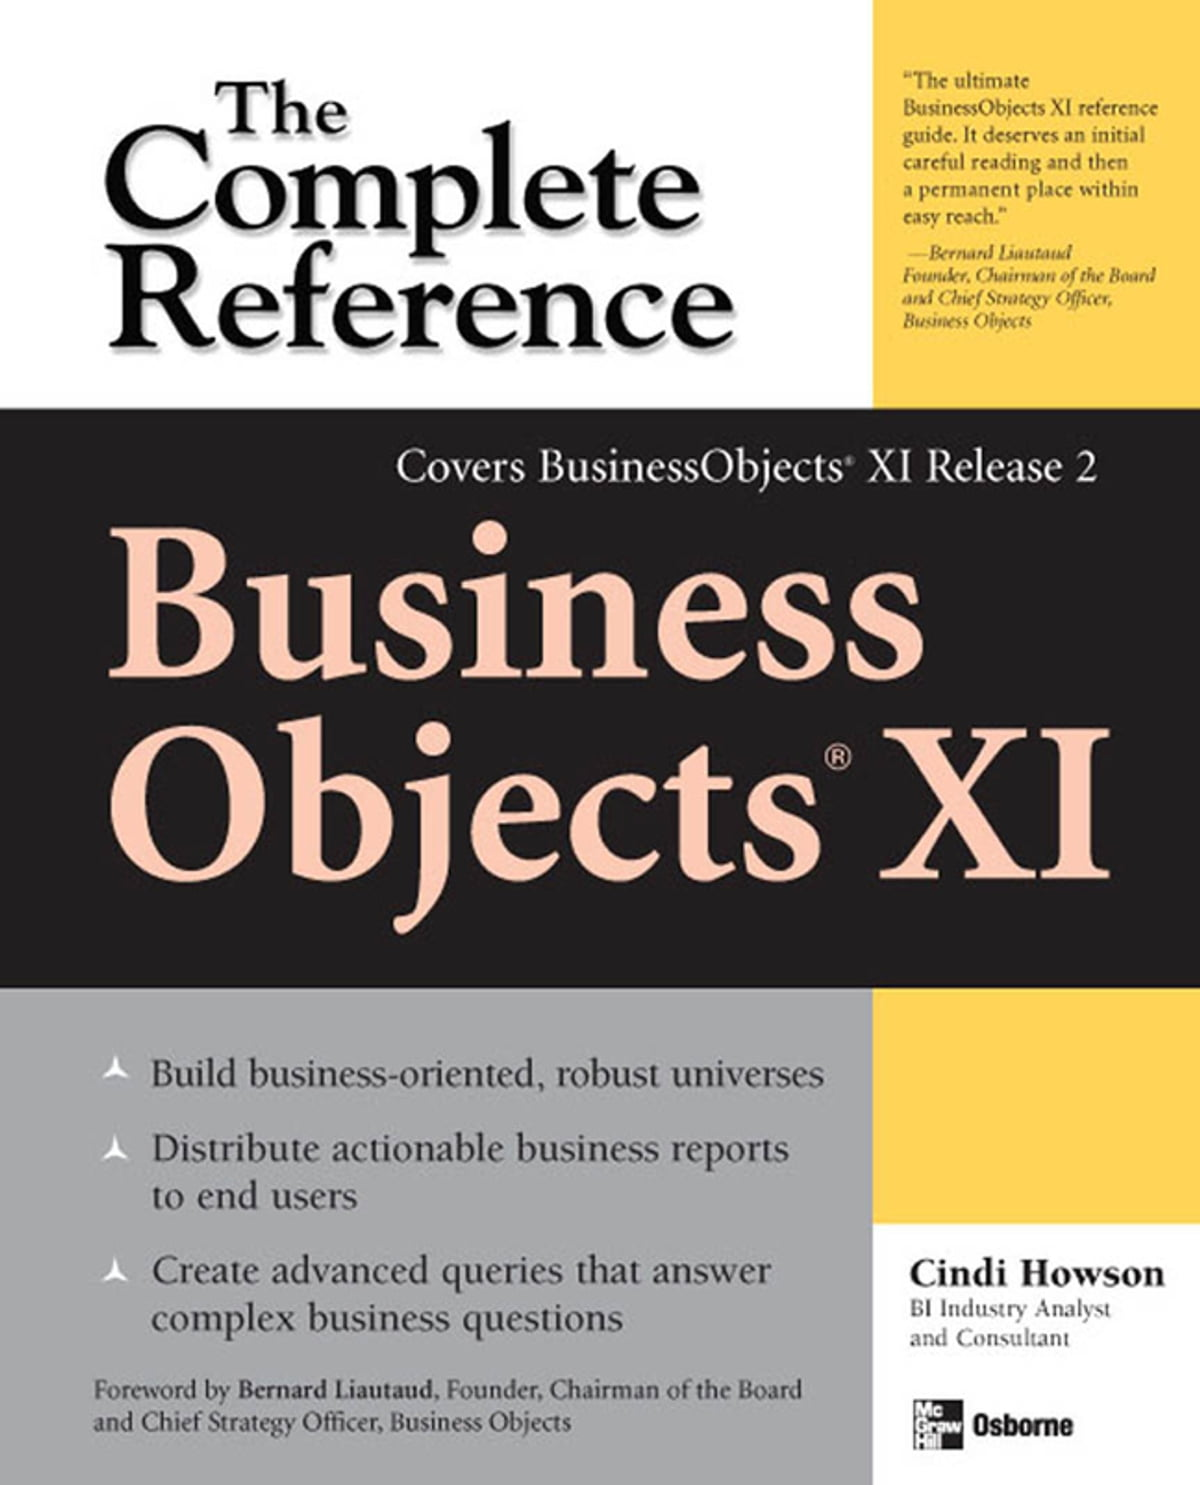 BusinessObjects XI (Release 2): The Complete Reference eBook by Cindi  Howson - 9780071491280 | Rakuten Kobo